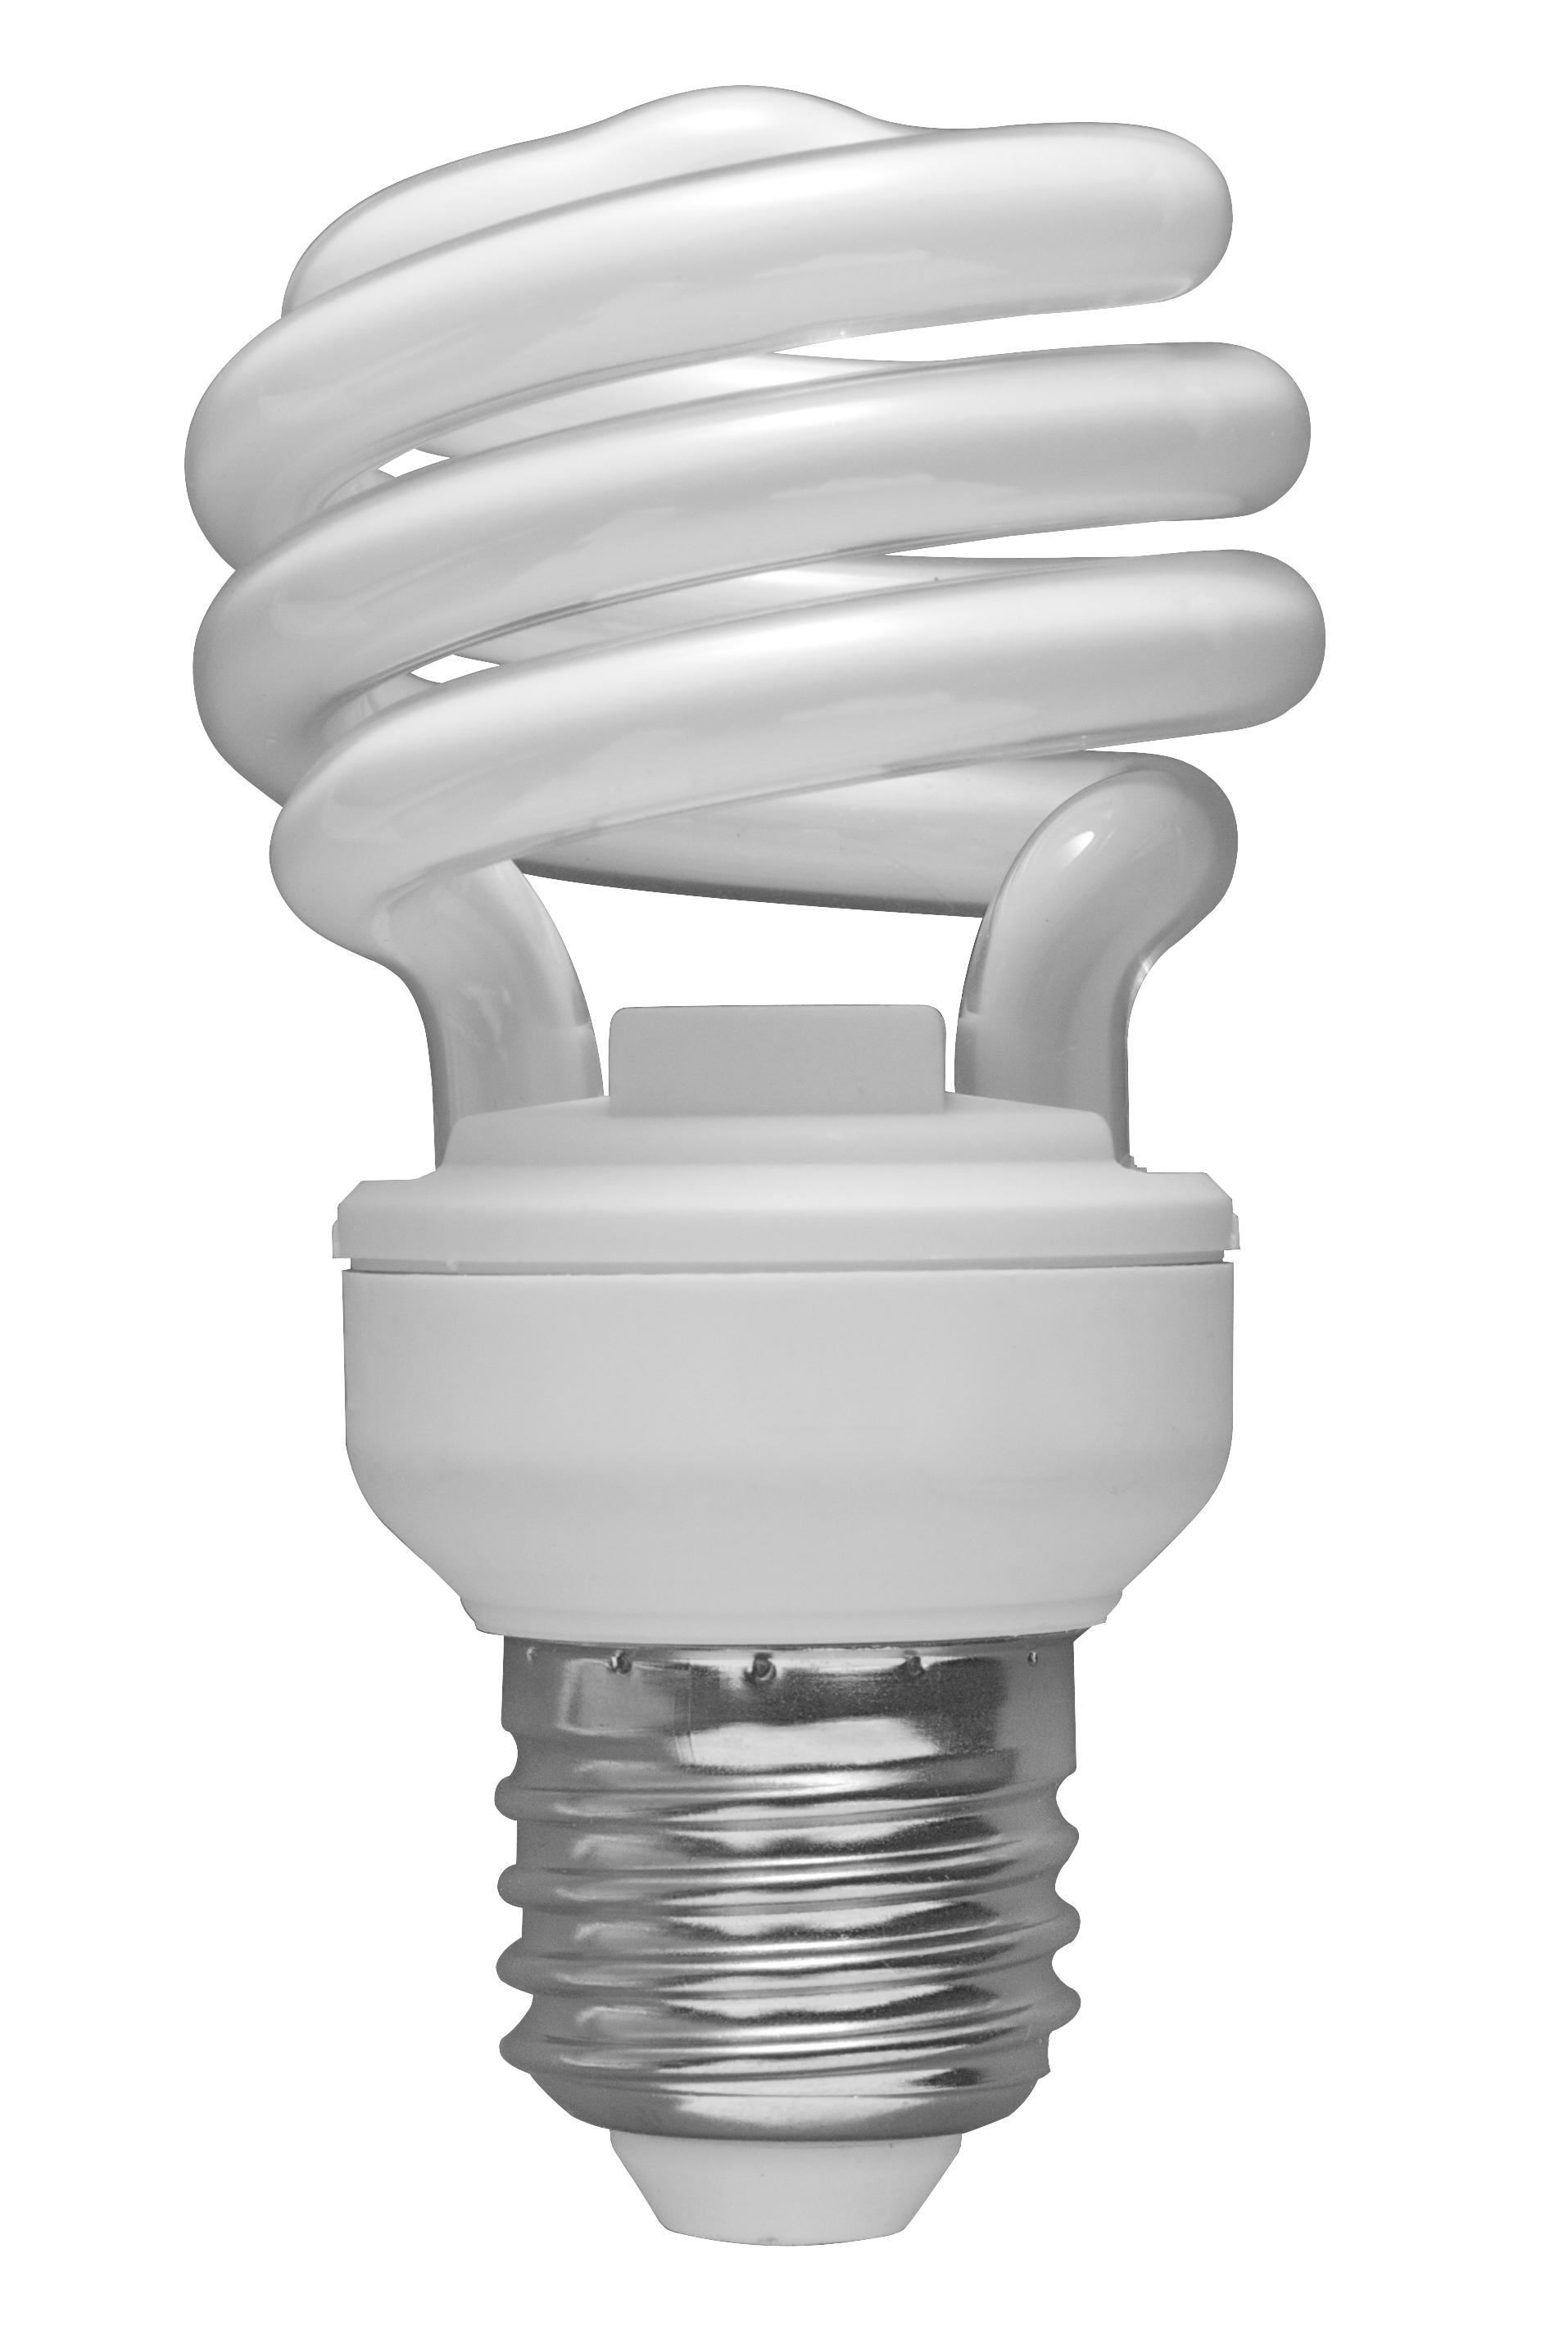 Holiday gifts that save energy money uga greenway news Cost of light bulb